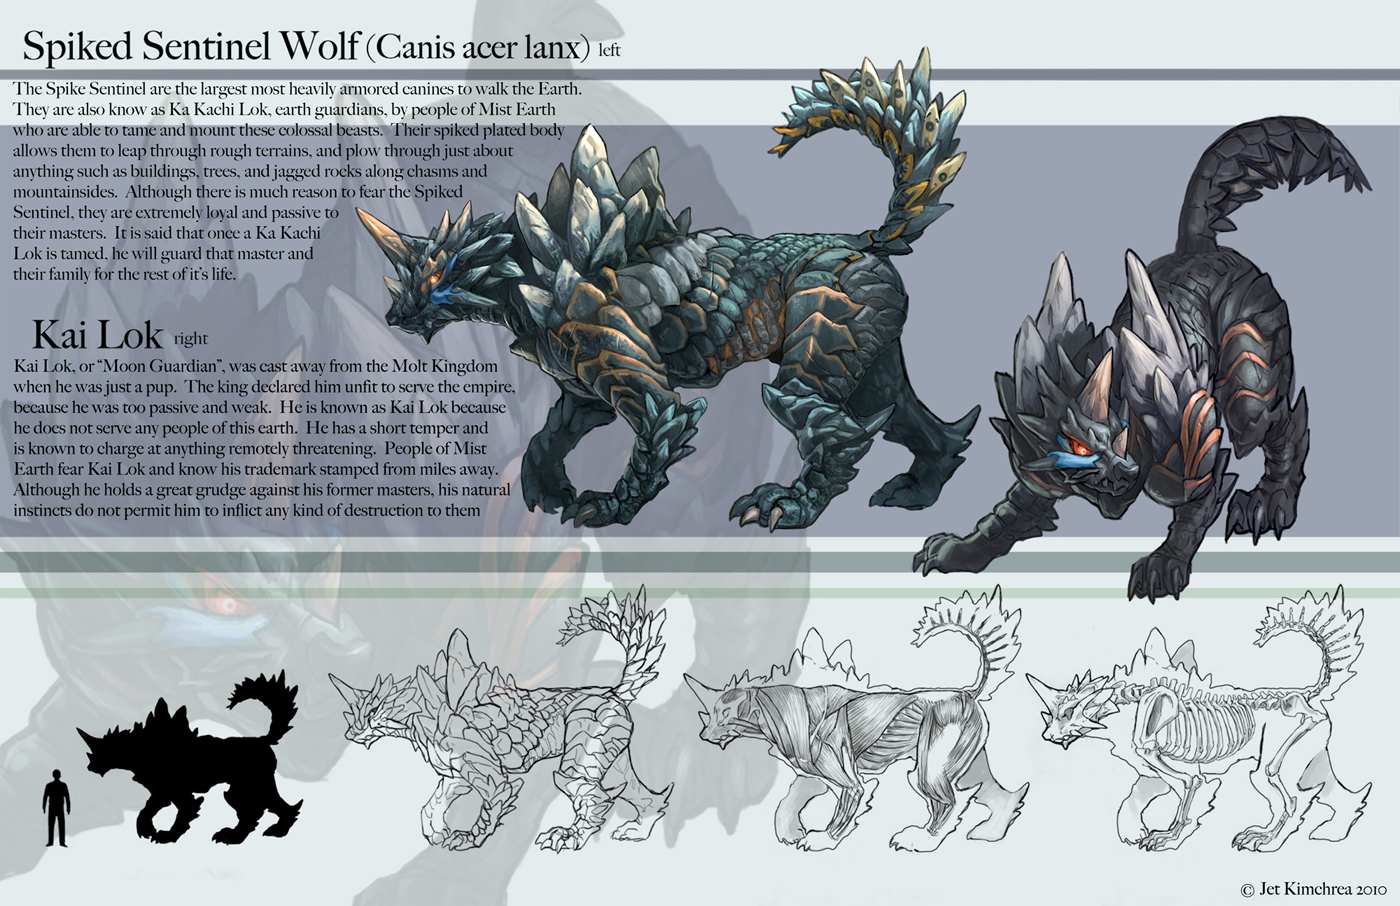 Spiked Sentinel Wolf